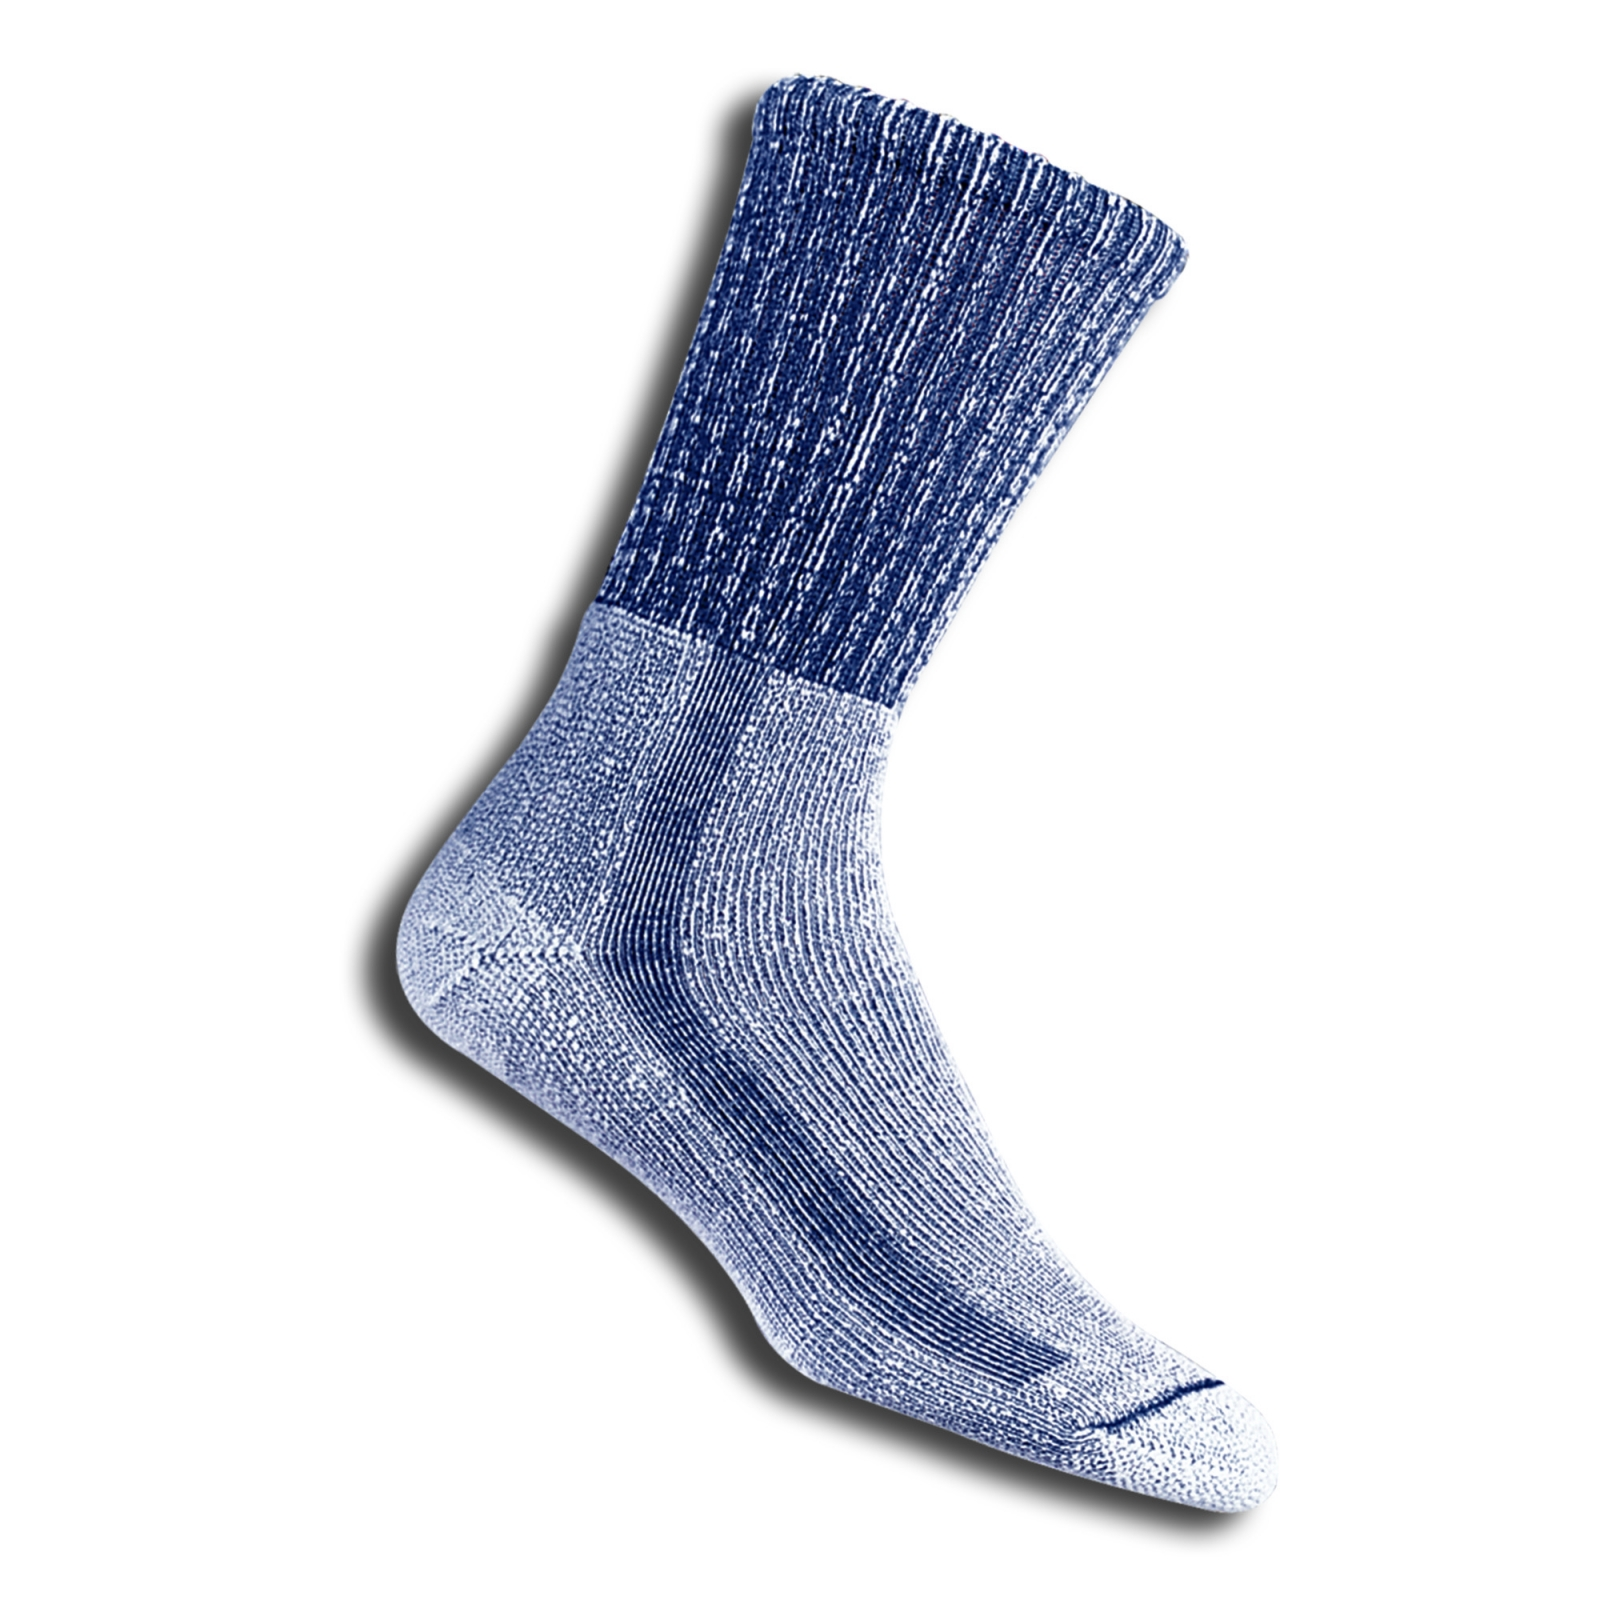 Thorlos Light Hiking Socks - Navy